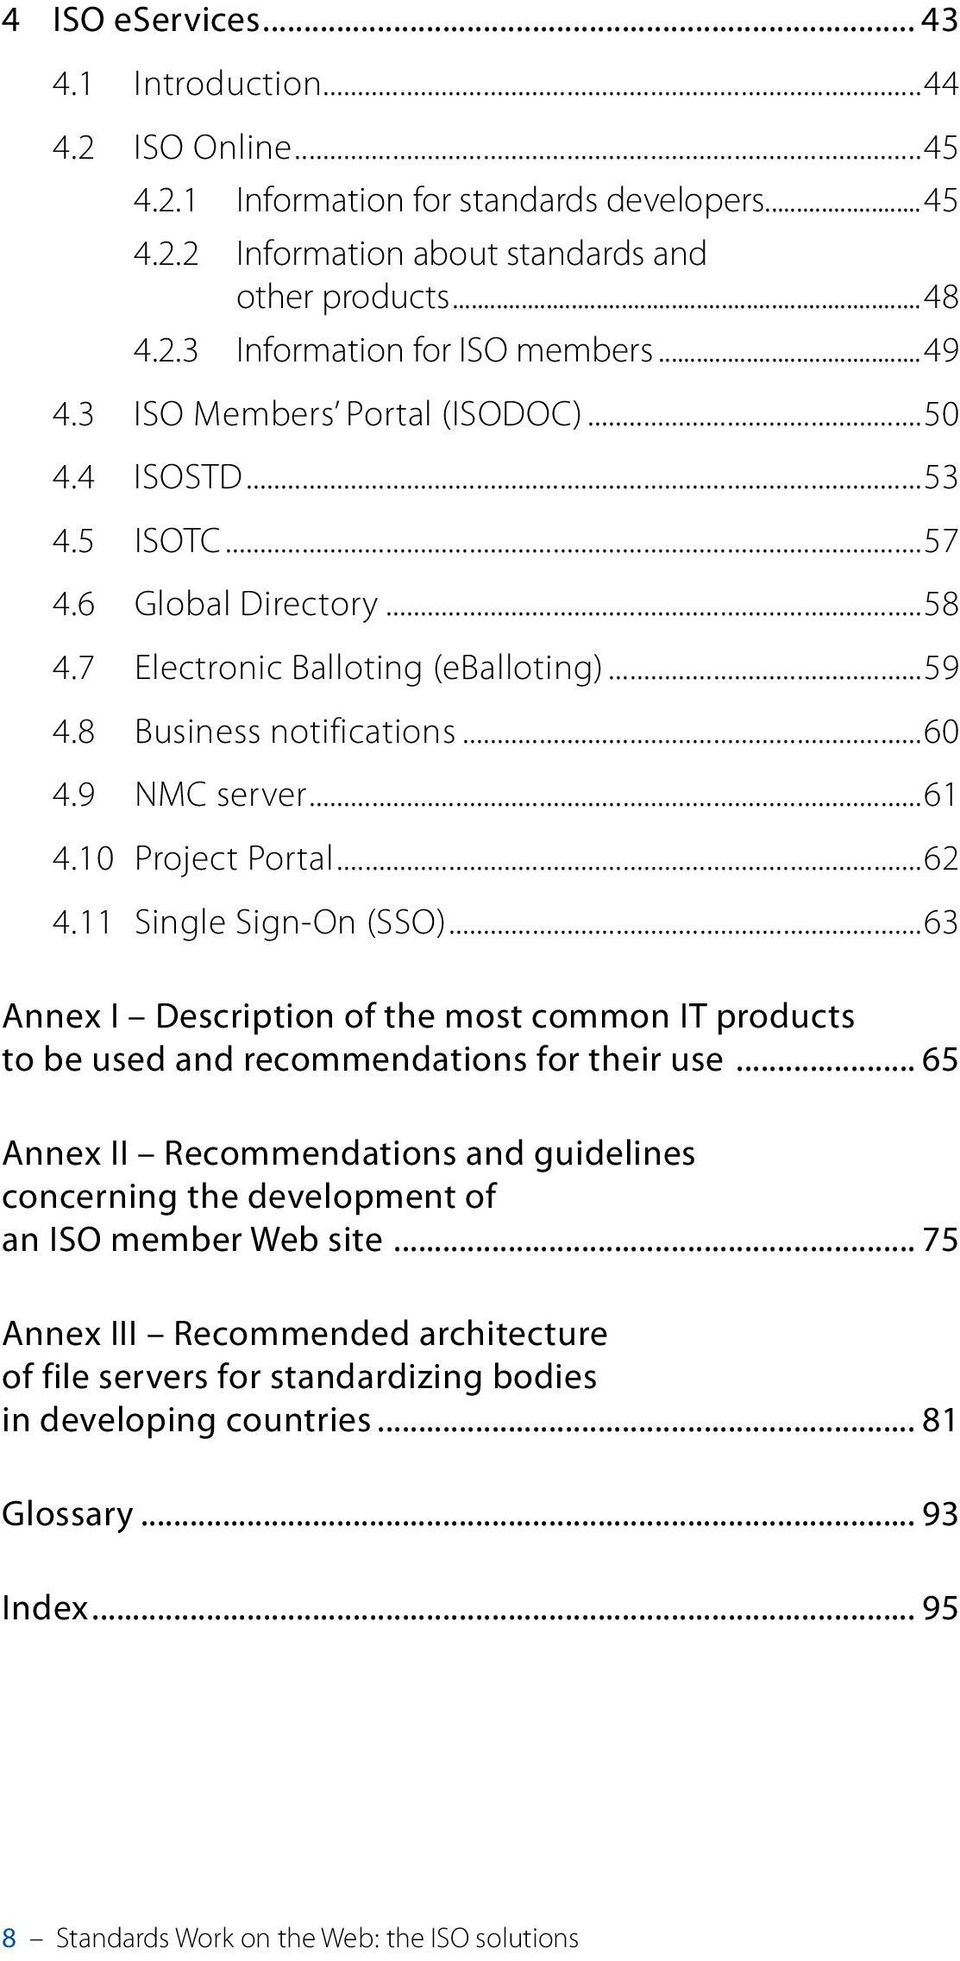 10 Project Portal...62 4.11 Single Sign-On (SSO)...63 Annex I Description of the most common IT products to be used and recommendations for their use.